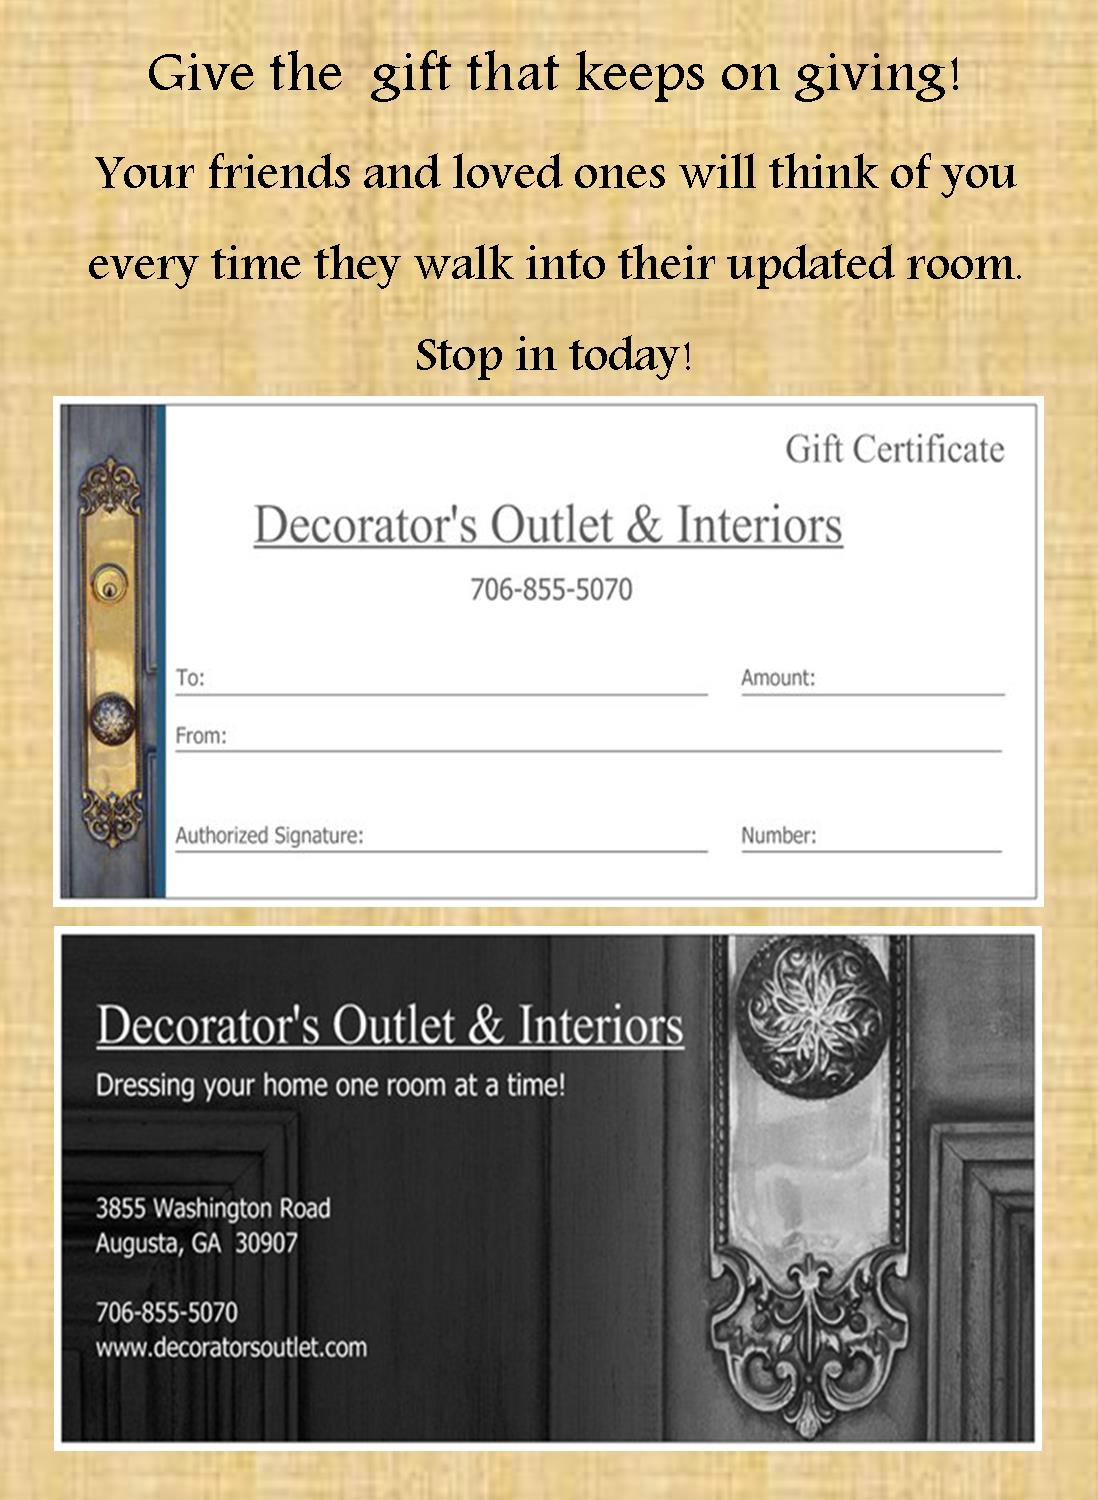 Gift Certificates | About